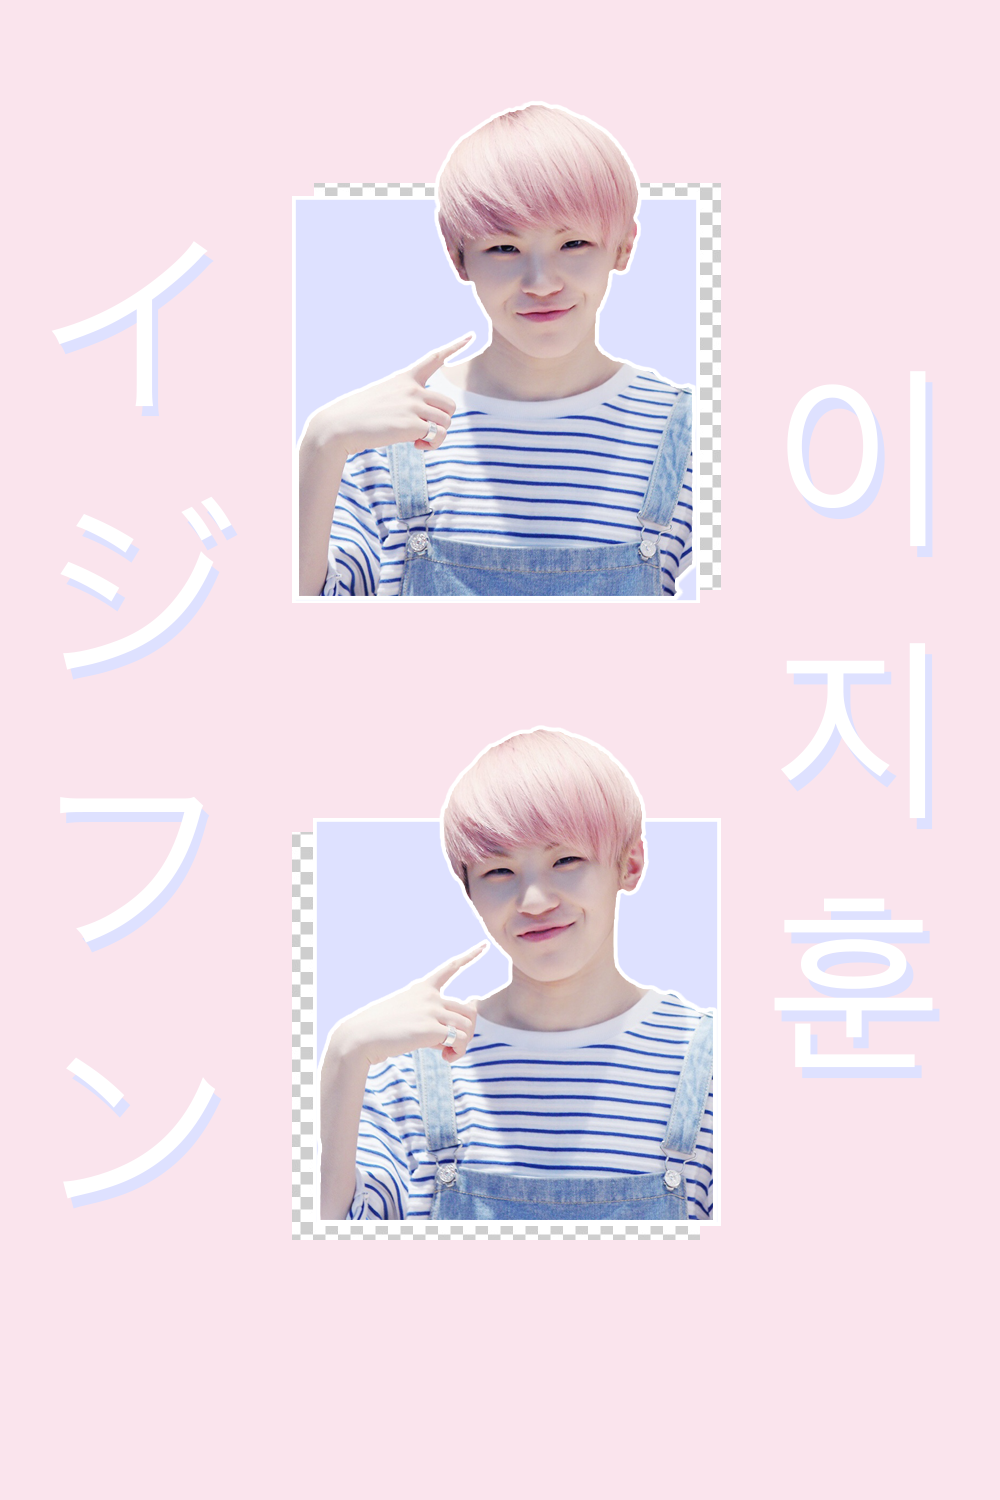 #woozi #wallpaper. For those of you who want the rising producer as your wallpaper! :)